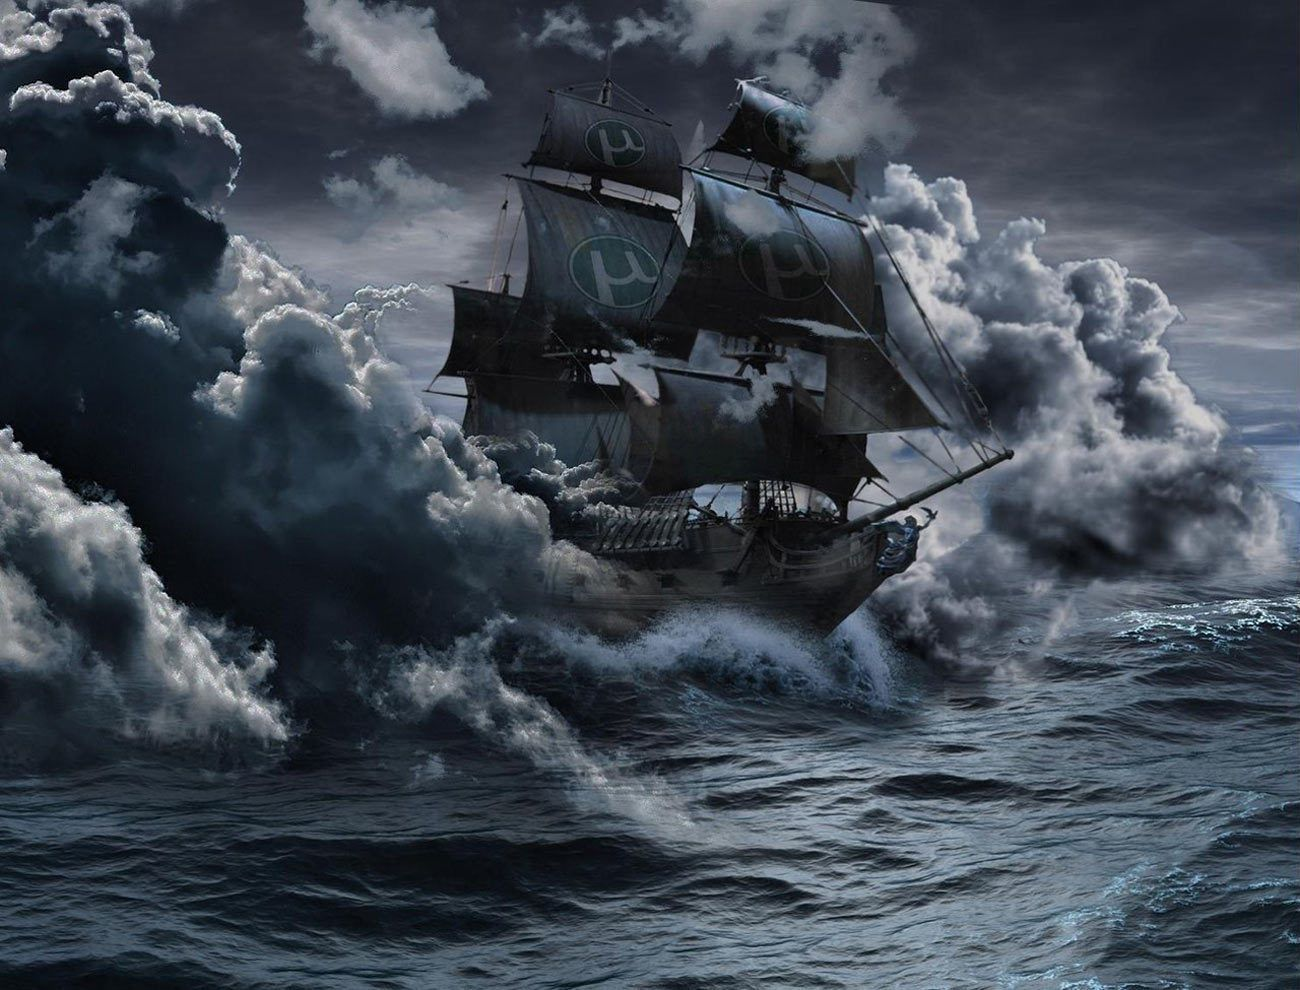 Ghost Pirate Ship Wallpaper For Android   Pirate ship ...